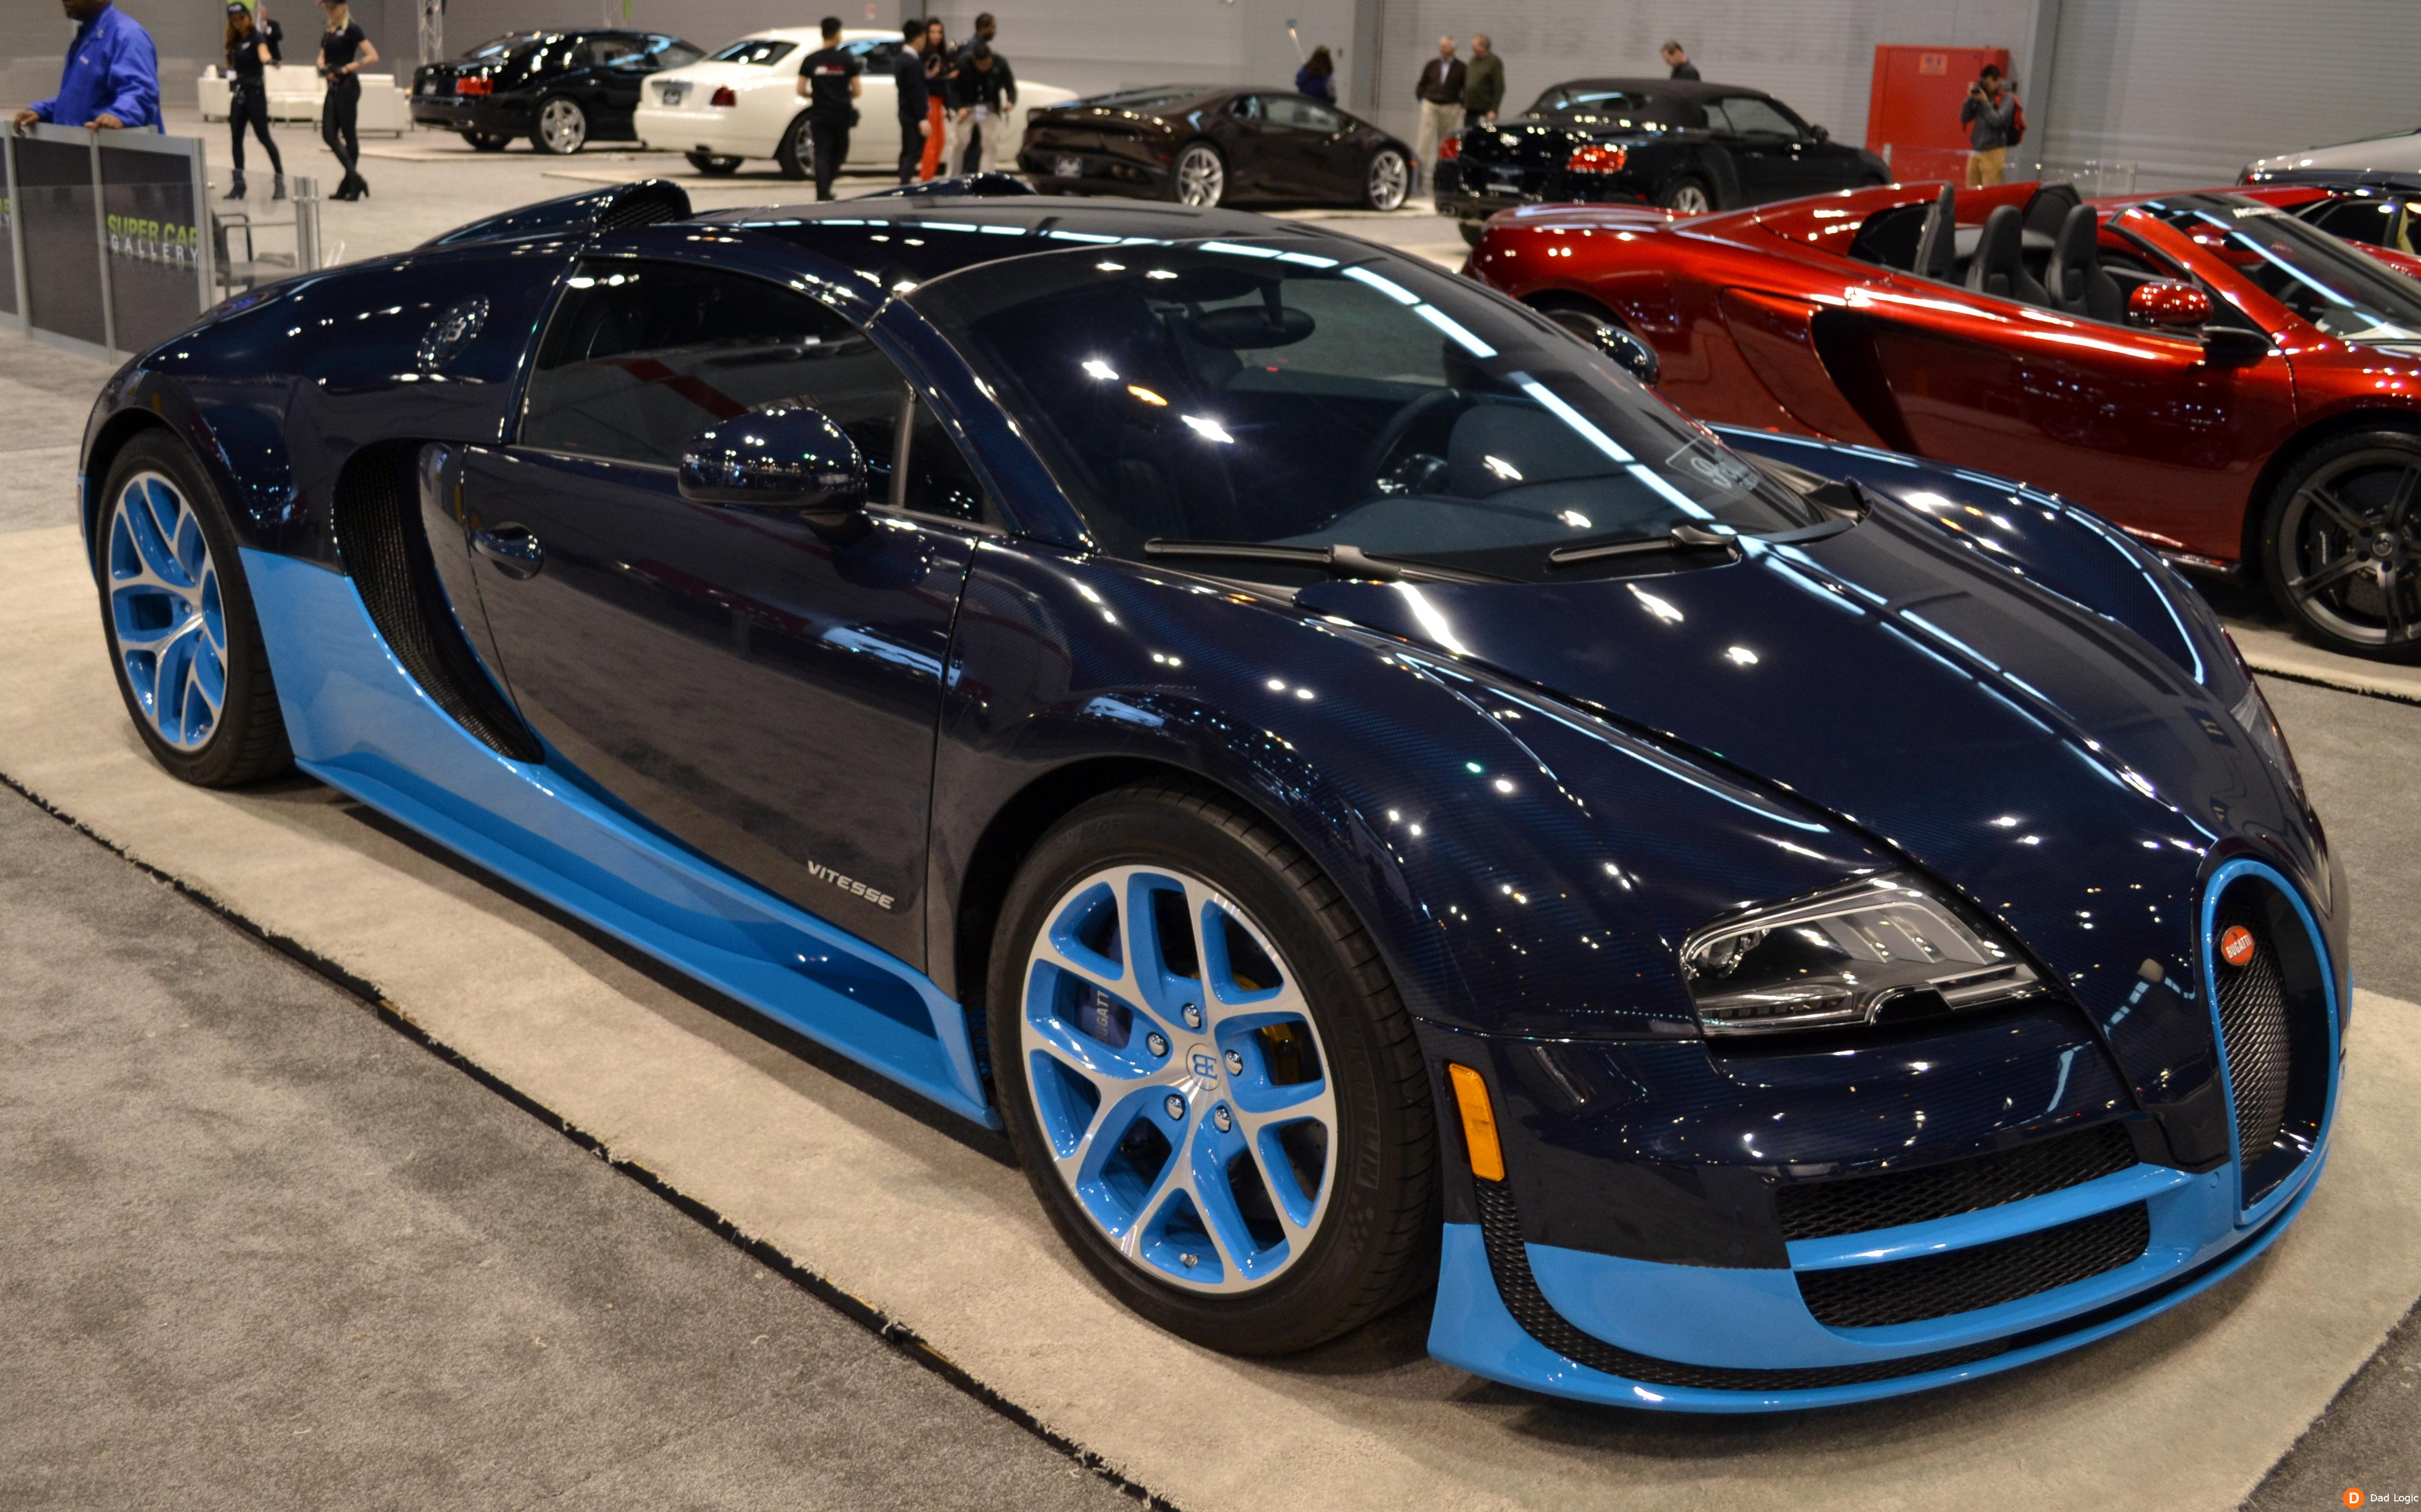 From Super Cars To The Family Minivan The Chicago Auto Show Has - Car show chicago today